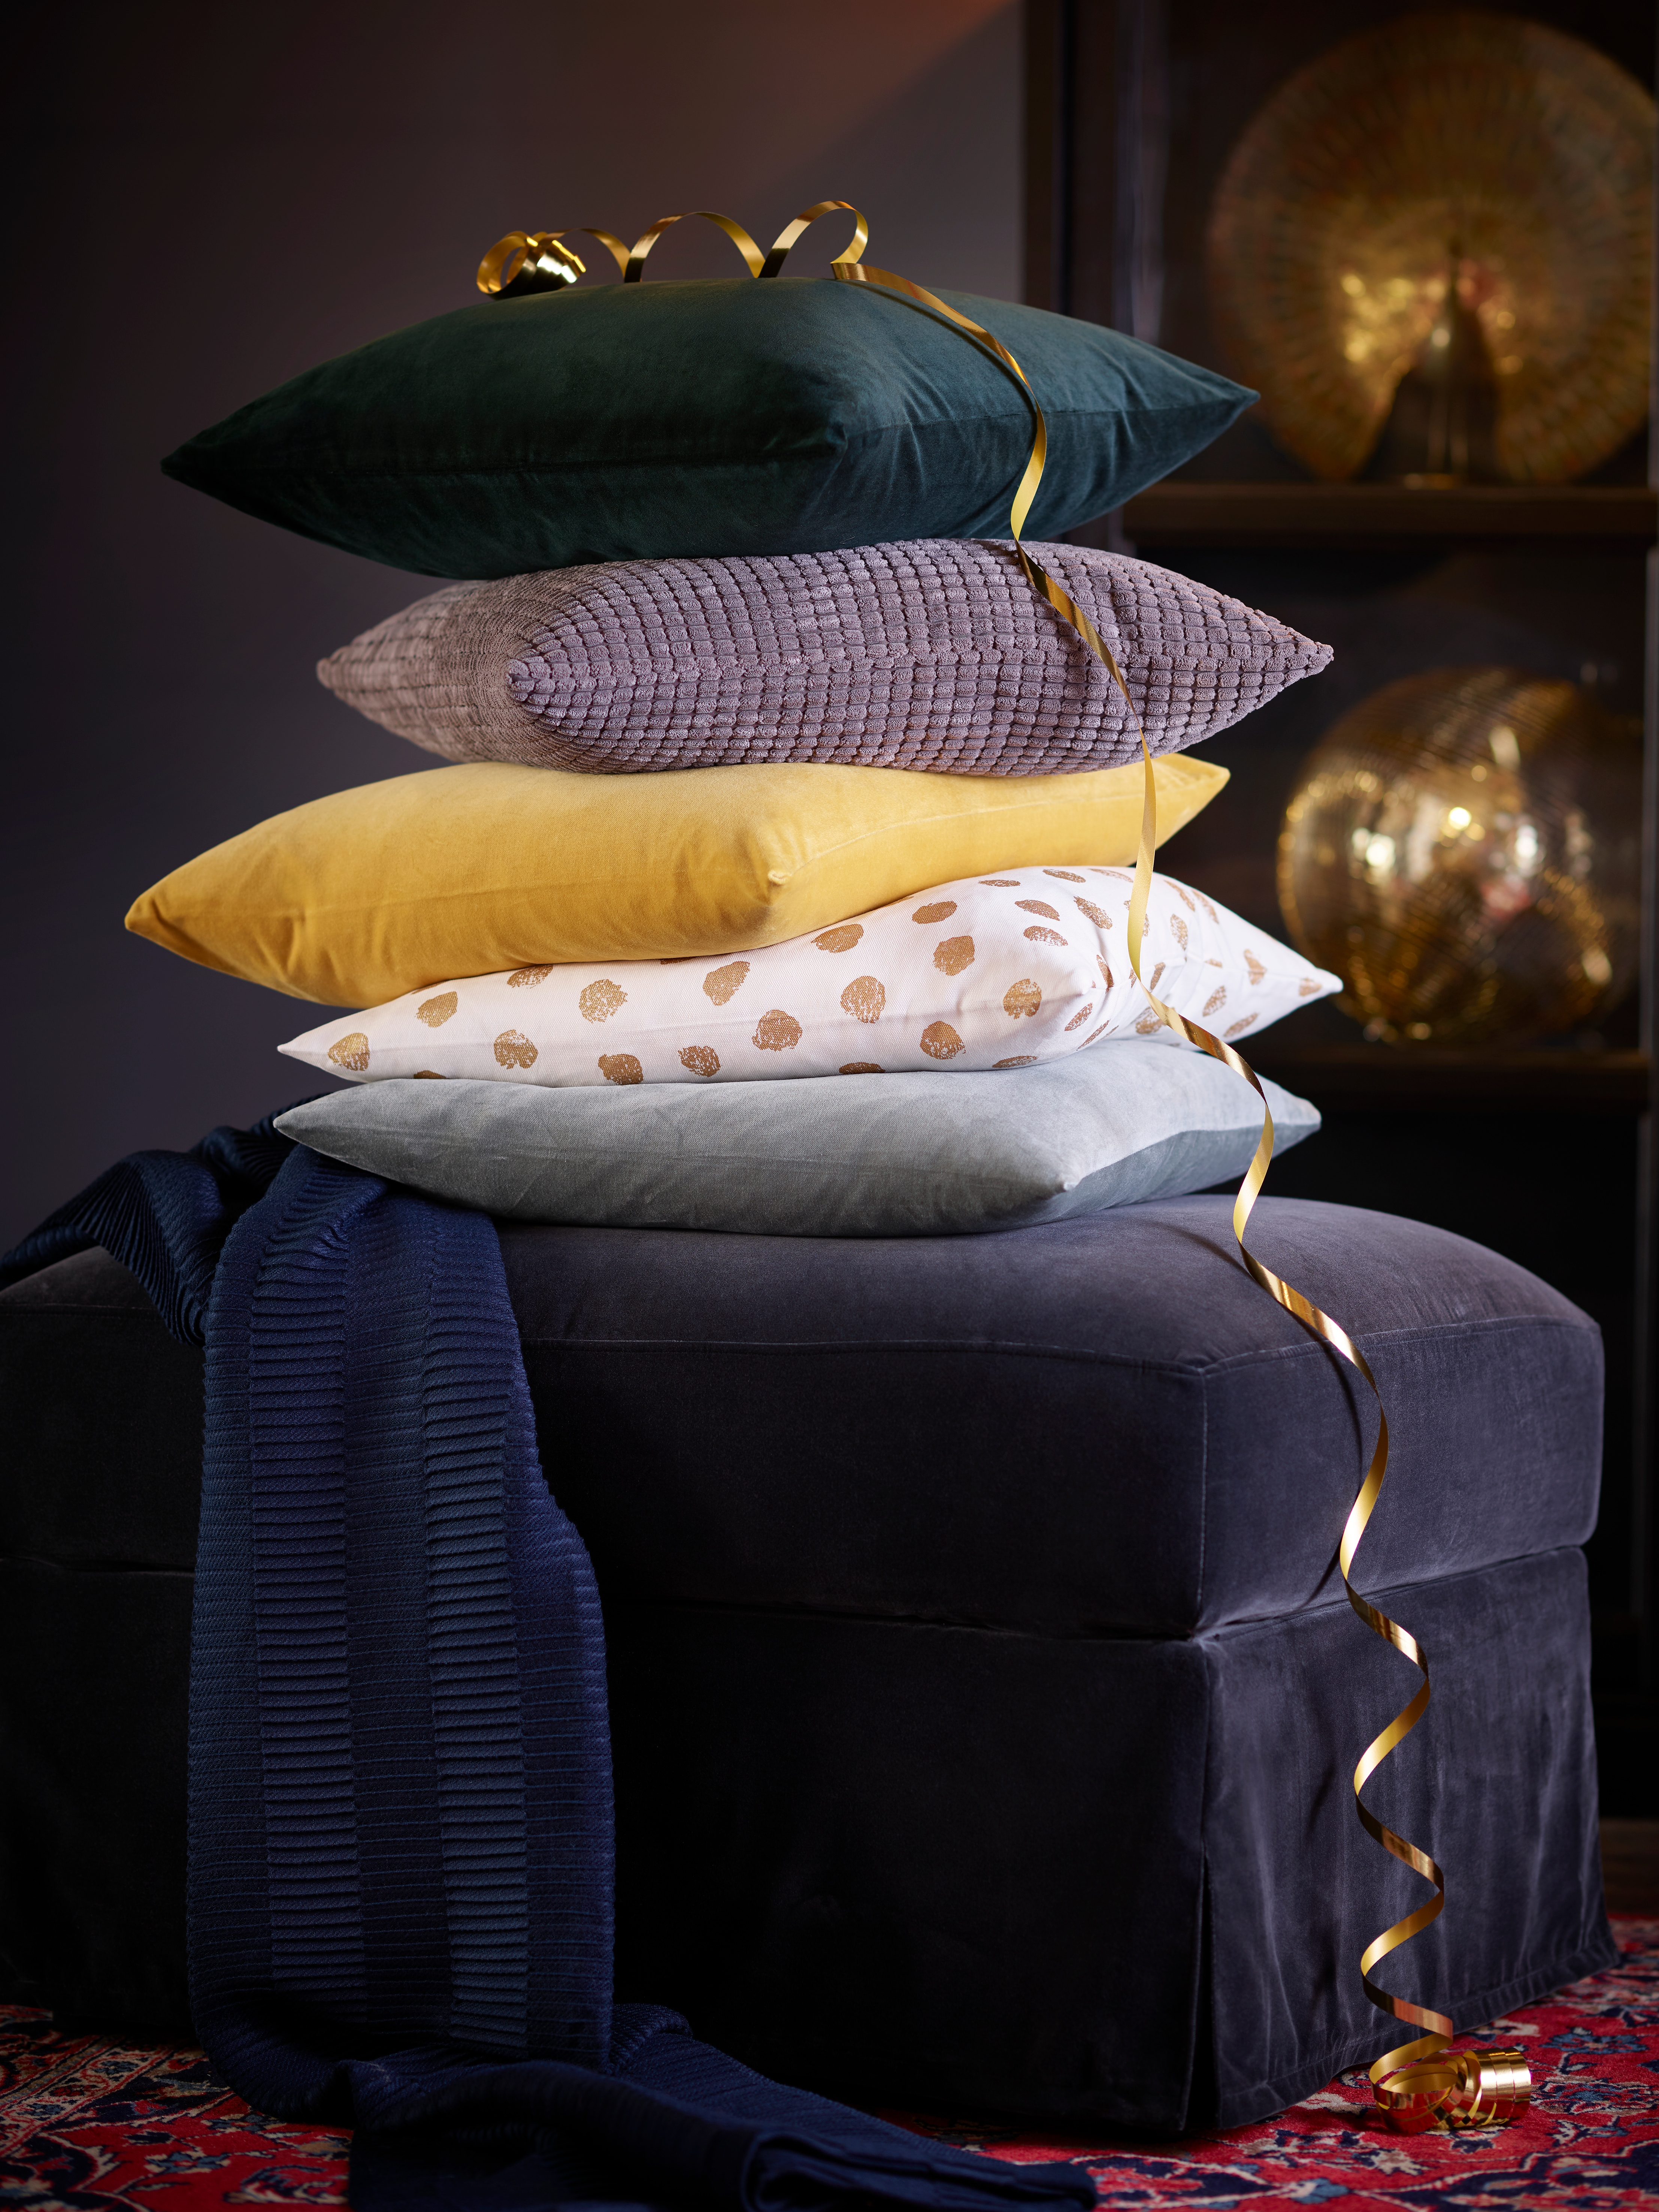 A footstool holds many stacked cushions, including a dark green SANELA cushion cover. A gold ribbon is draped on everything.